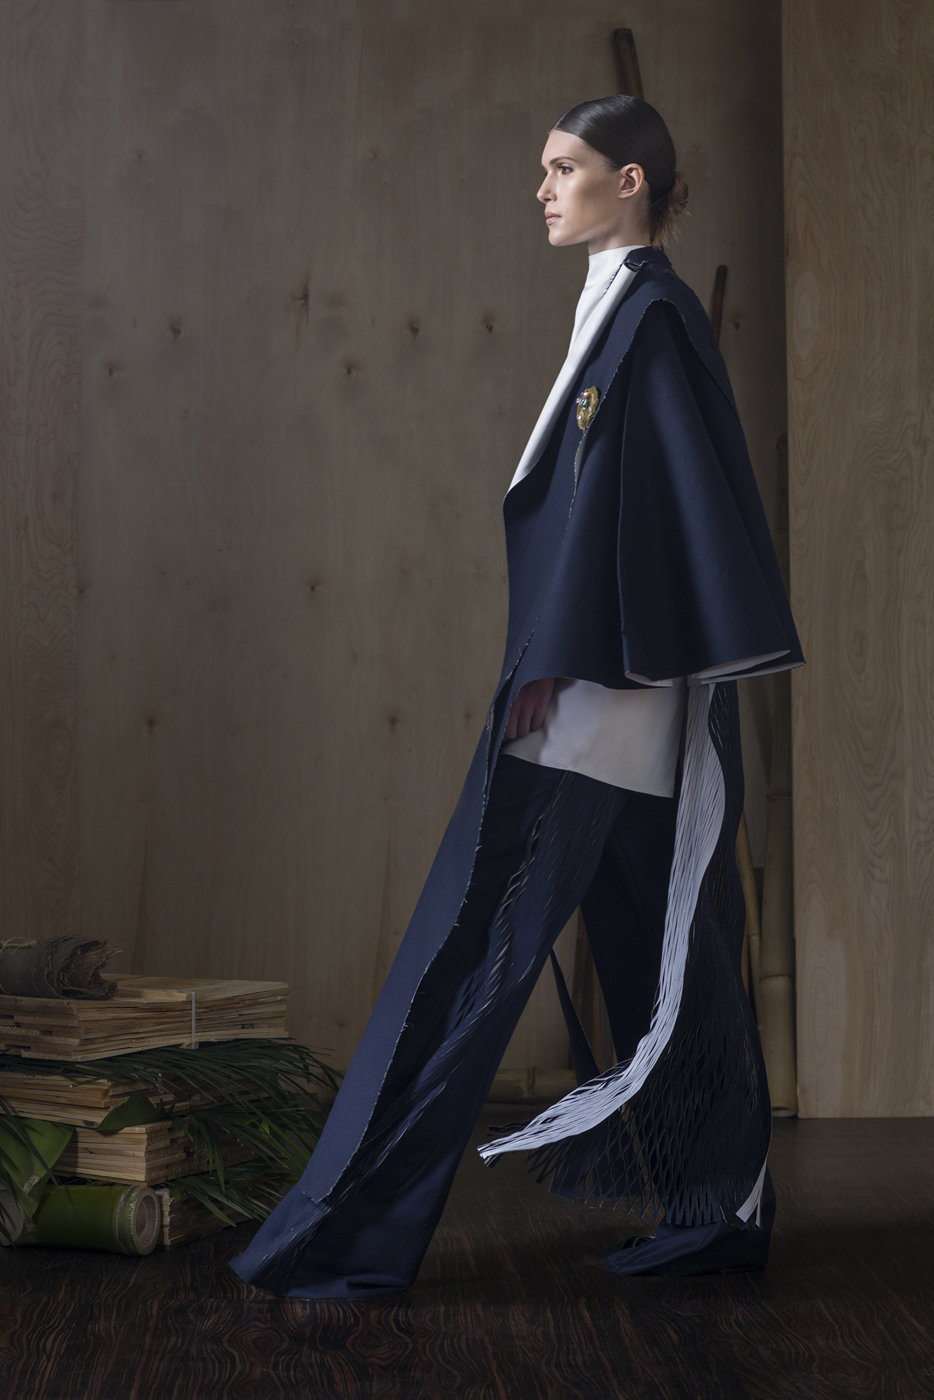 Oxford Cotton Funnel Neck Sleeveless Bouse  Paired With  Navy Double Bonded RAW Wool/Cotton Cape, Sideless Over-Vest and Navy Wool Flannel Trousers with Slitted Side Inserts.Polished, Stoned Brooch.